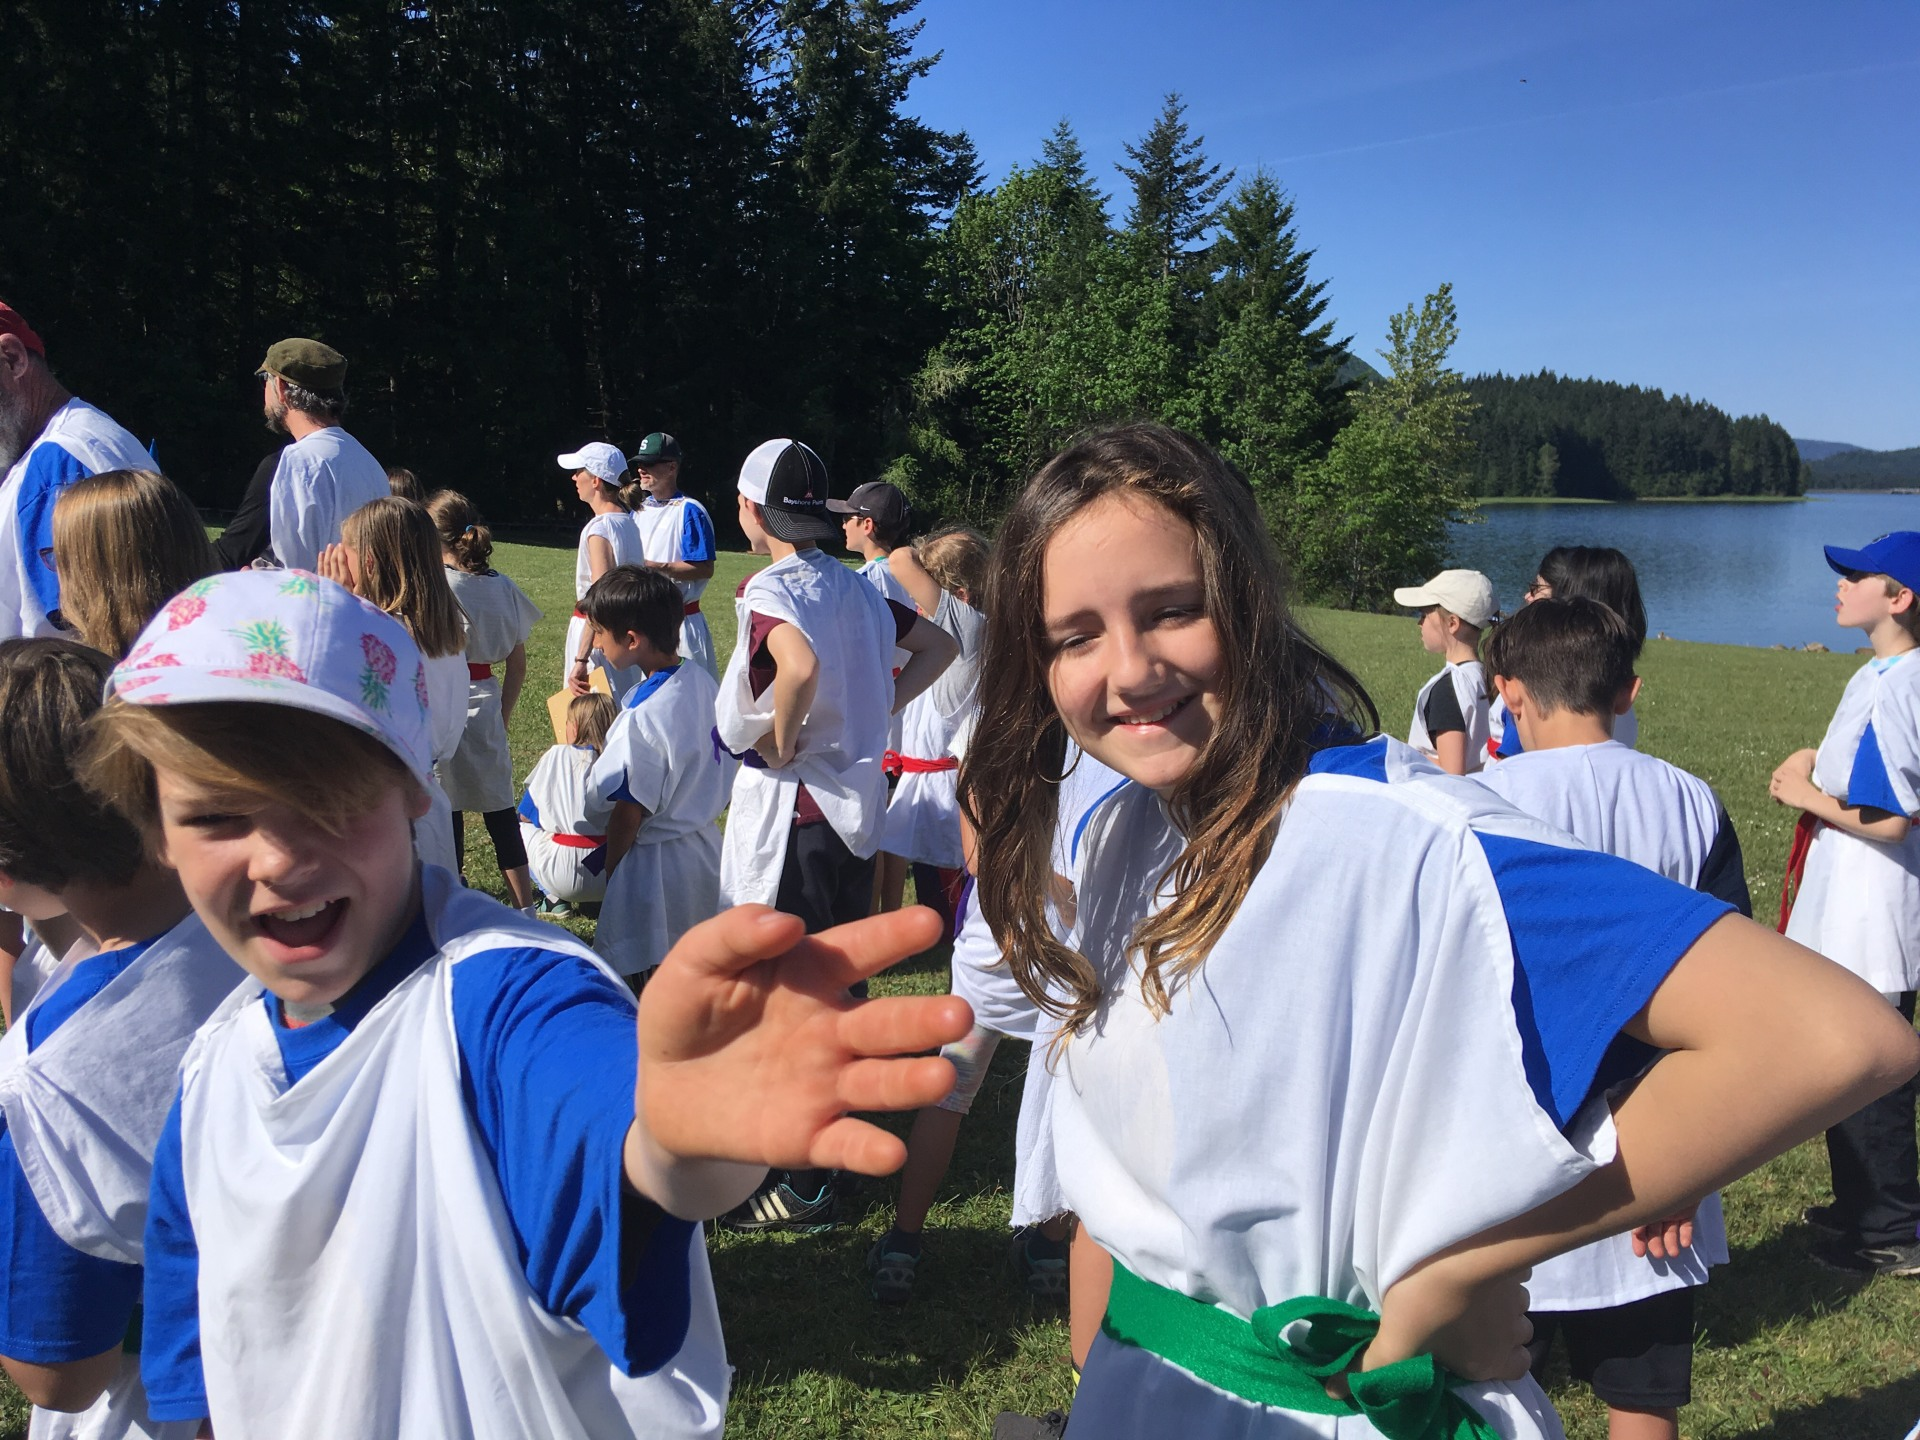 5th graders enjoy their time at Greek Games [click image to see entire picture]